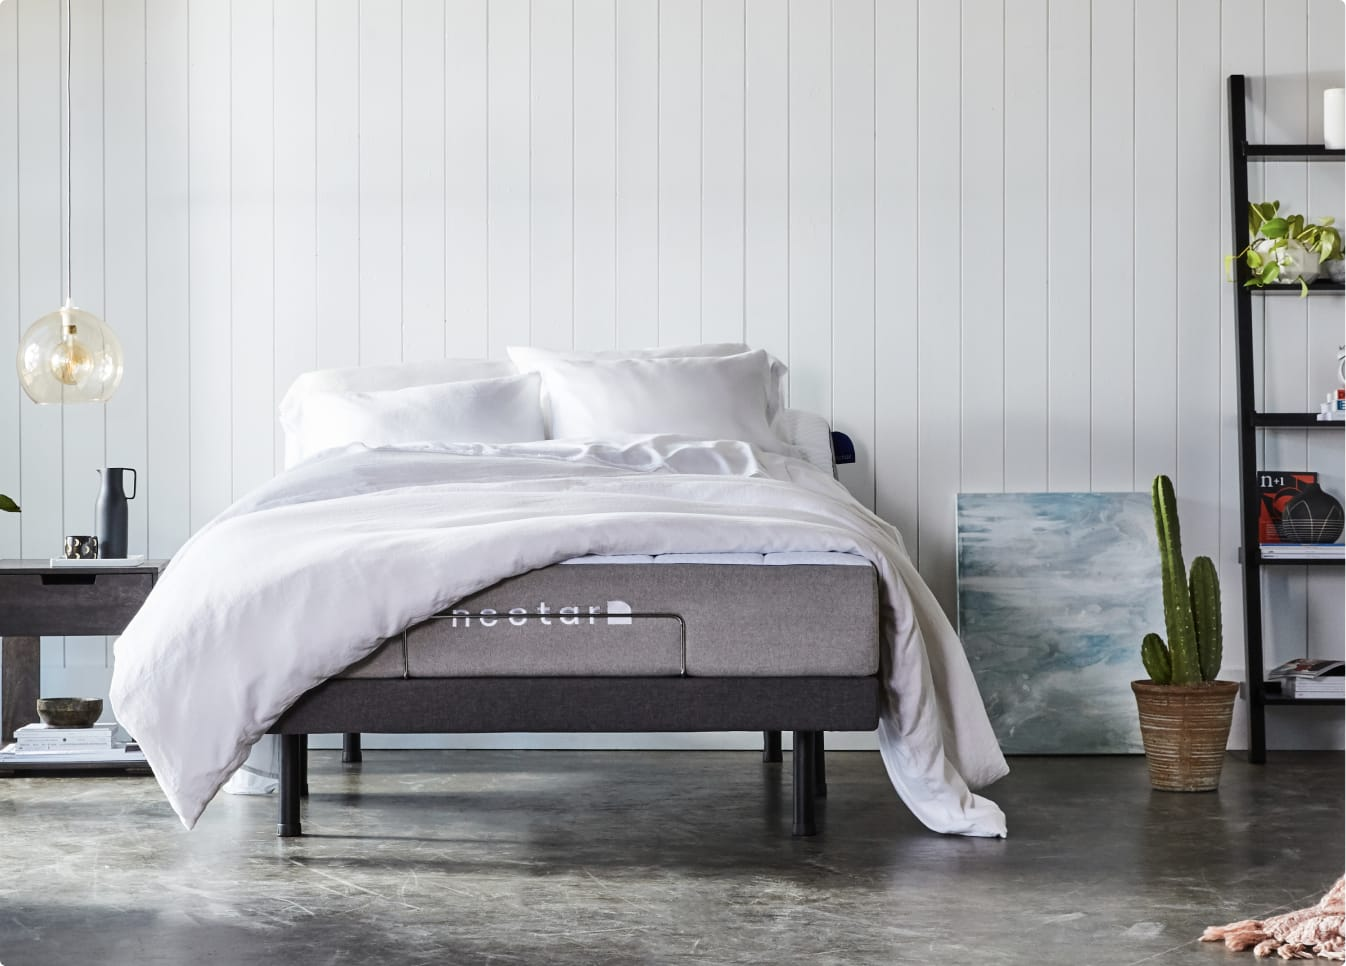 Nectar's Adjustable Bed Frame with Mattress